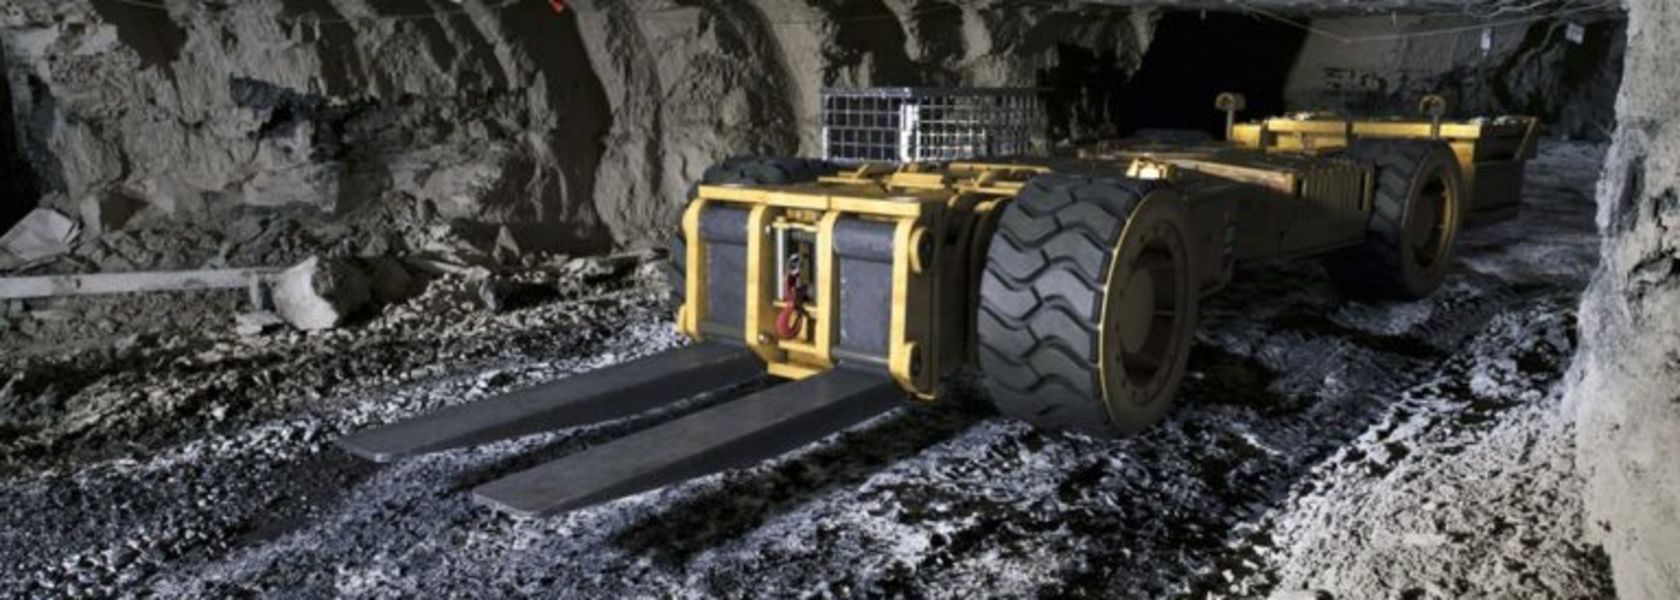 Queensland Centre of Excellence to feature coal mine